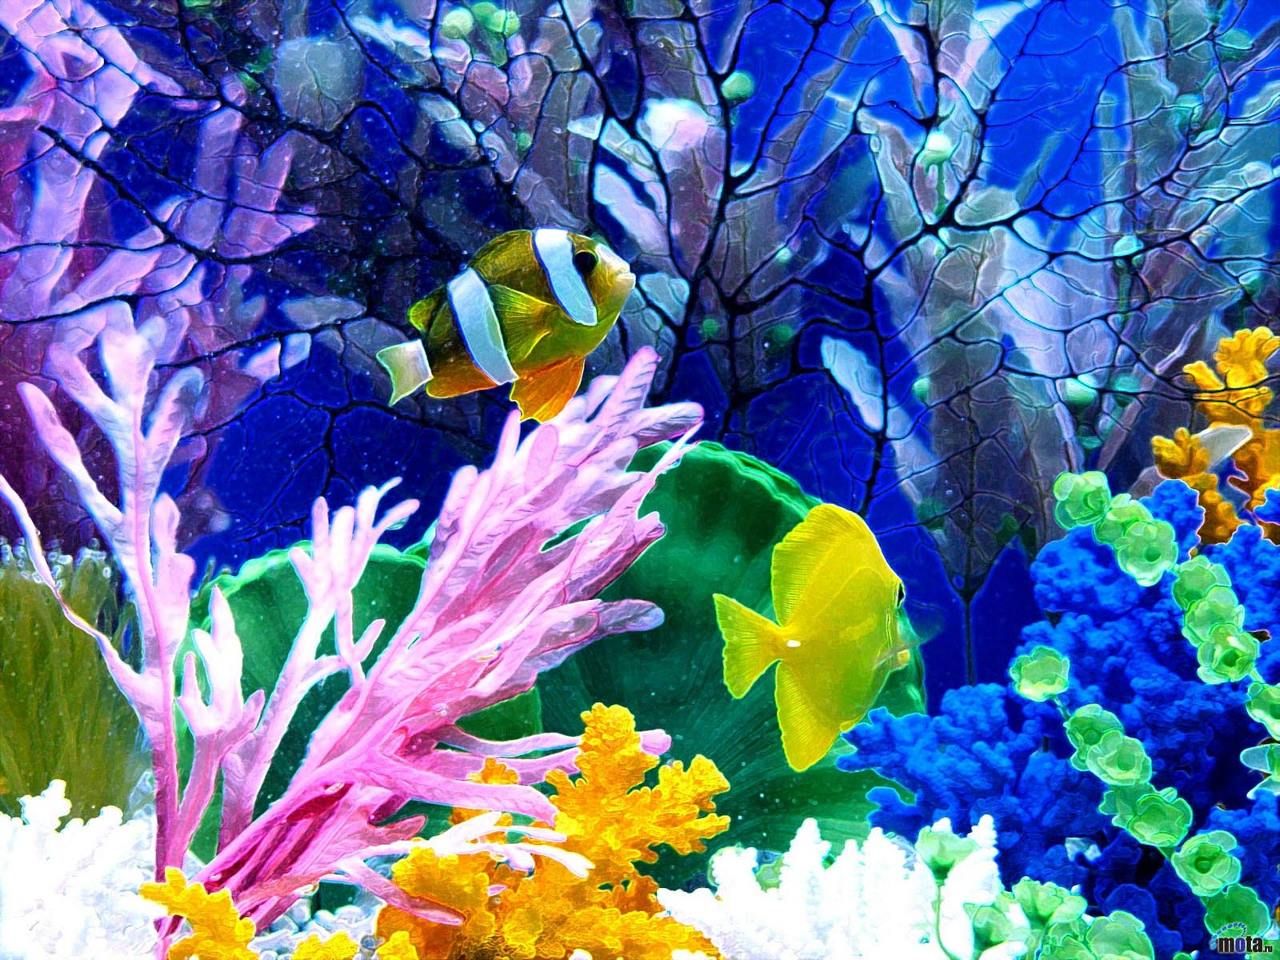 Aquarium hd wallpaper, aquarium wallpaper | Amazing Wallpapers